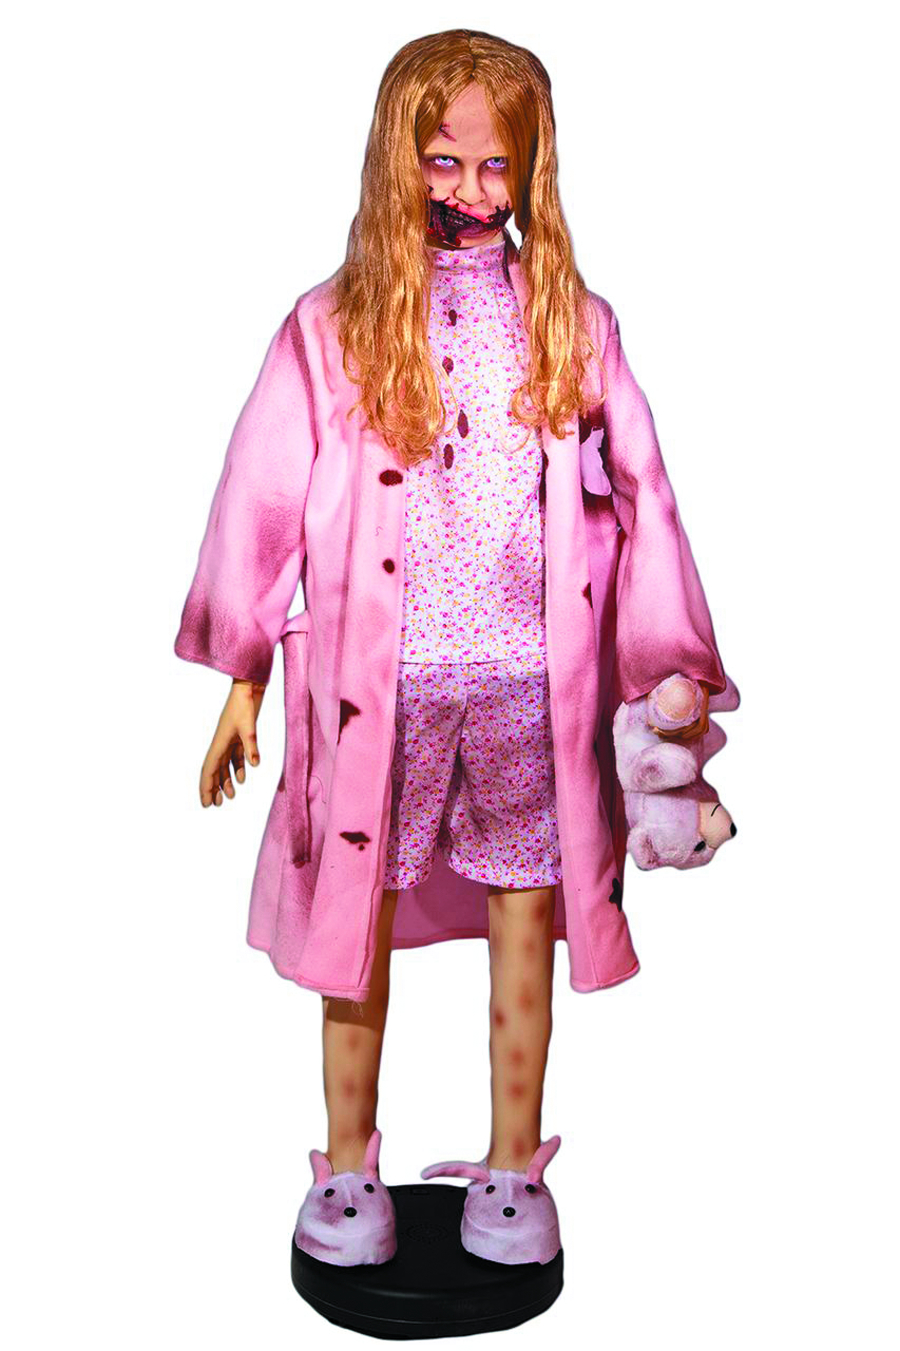 WALKING DEAD TEDDY BEAR GIRL 55 INCH ELECTRONIC FIGURE